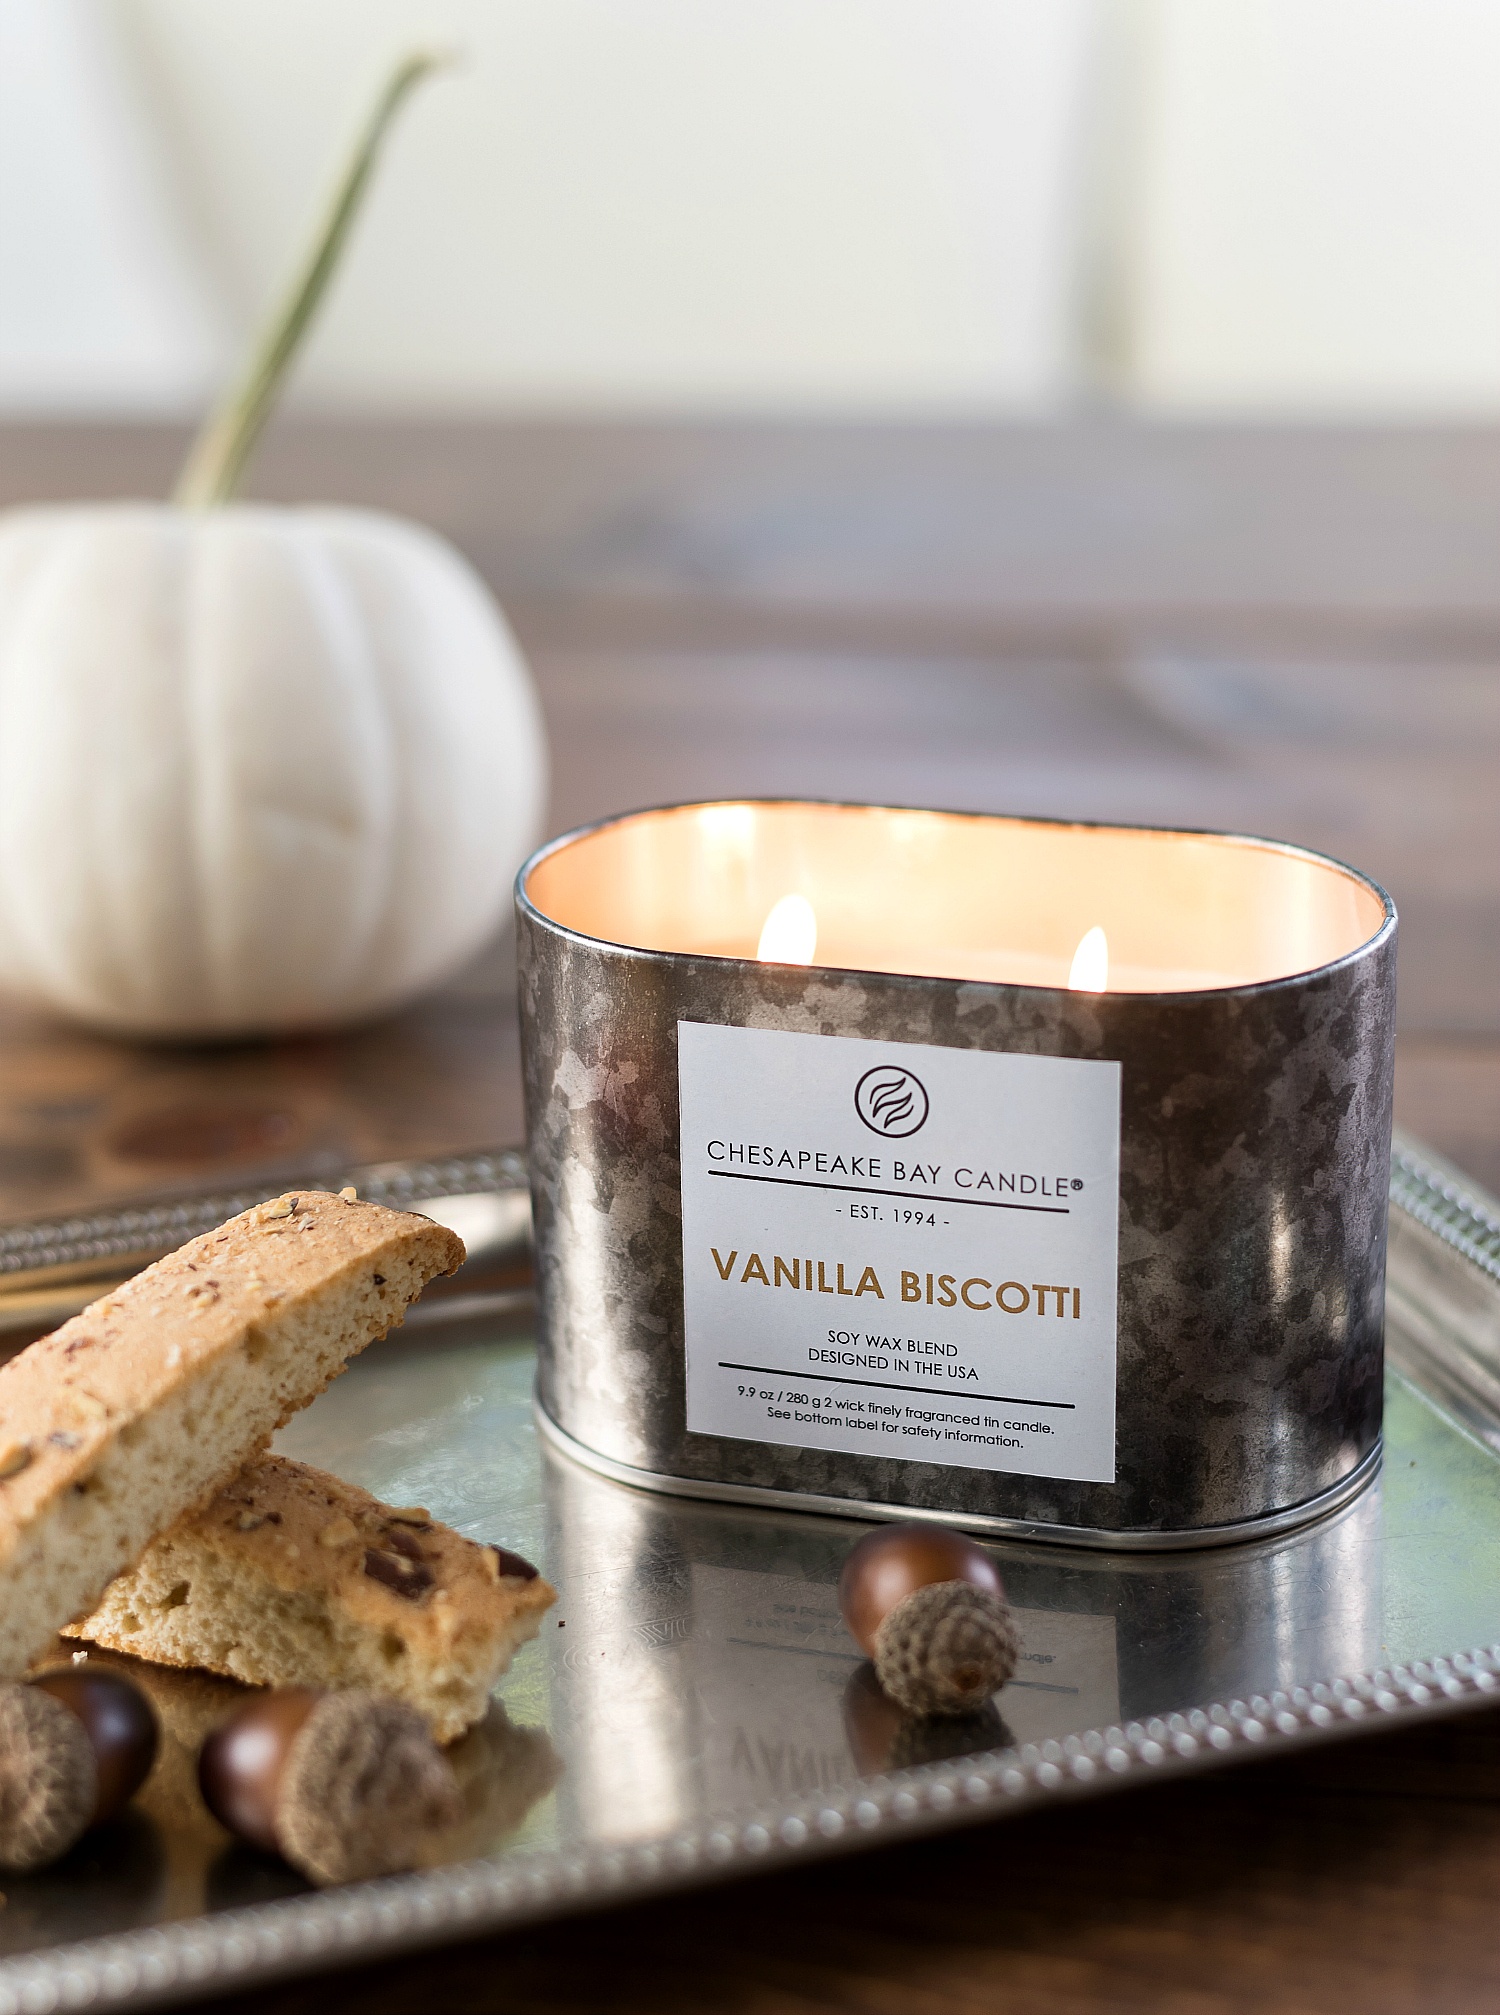 Fall Candles from Chesapeake Bay Candle Heritage Collection Fall 2017